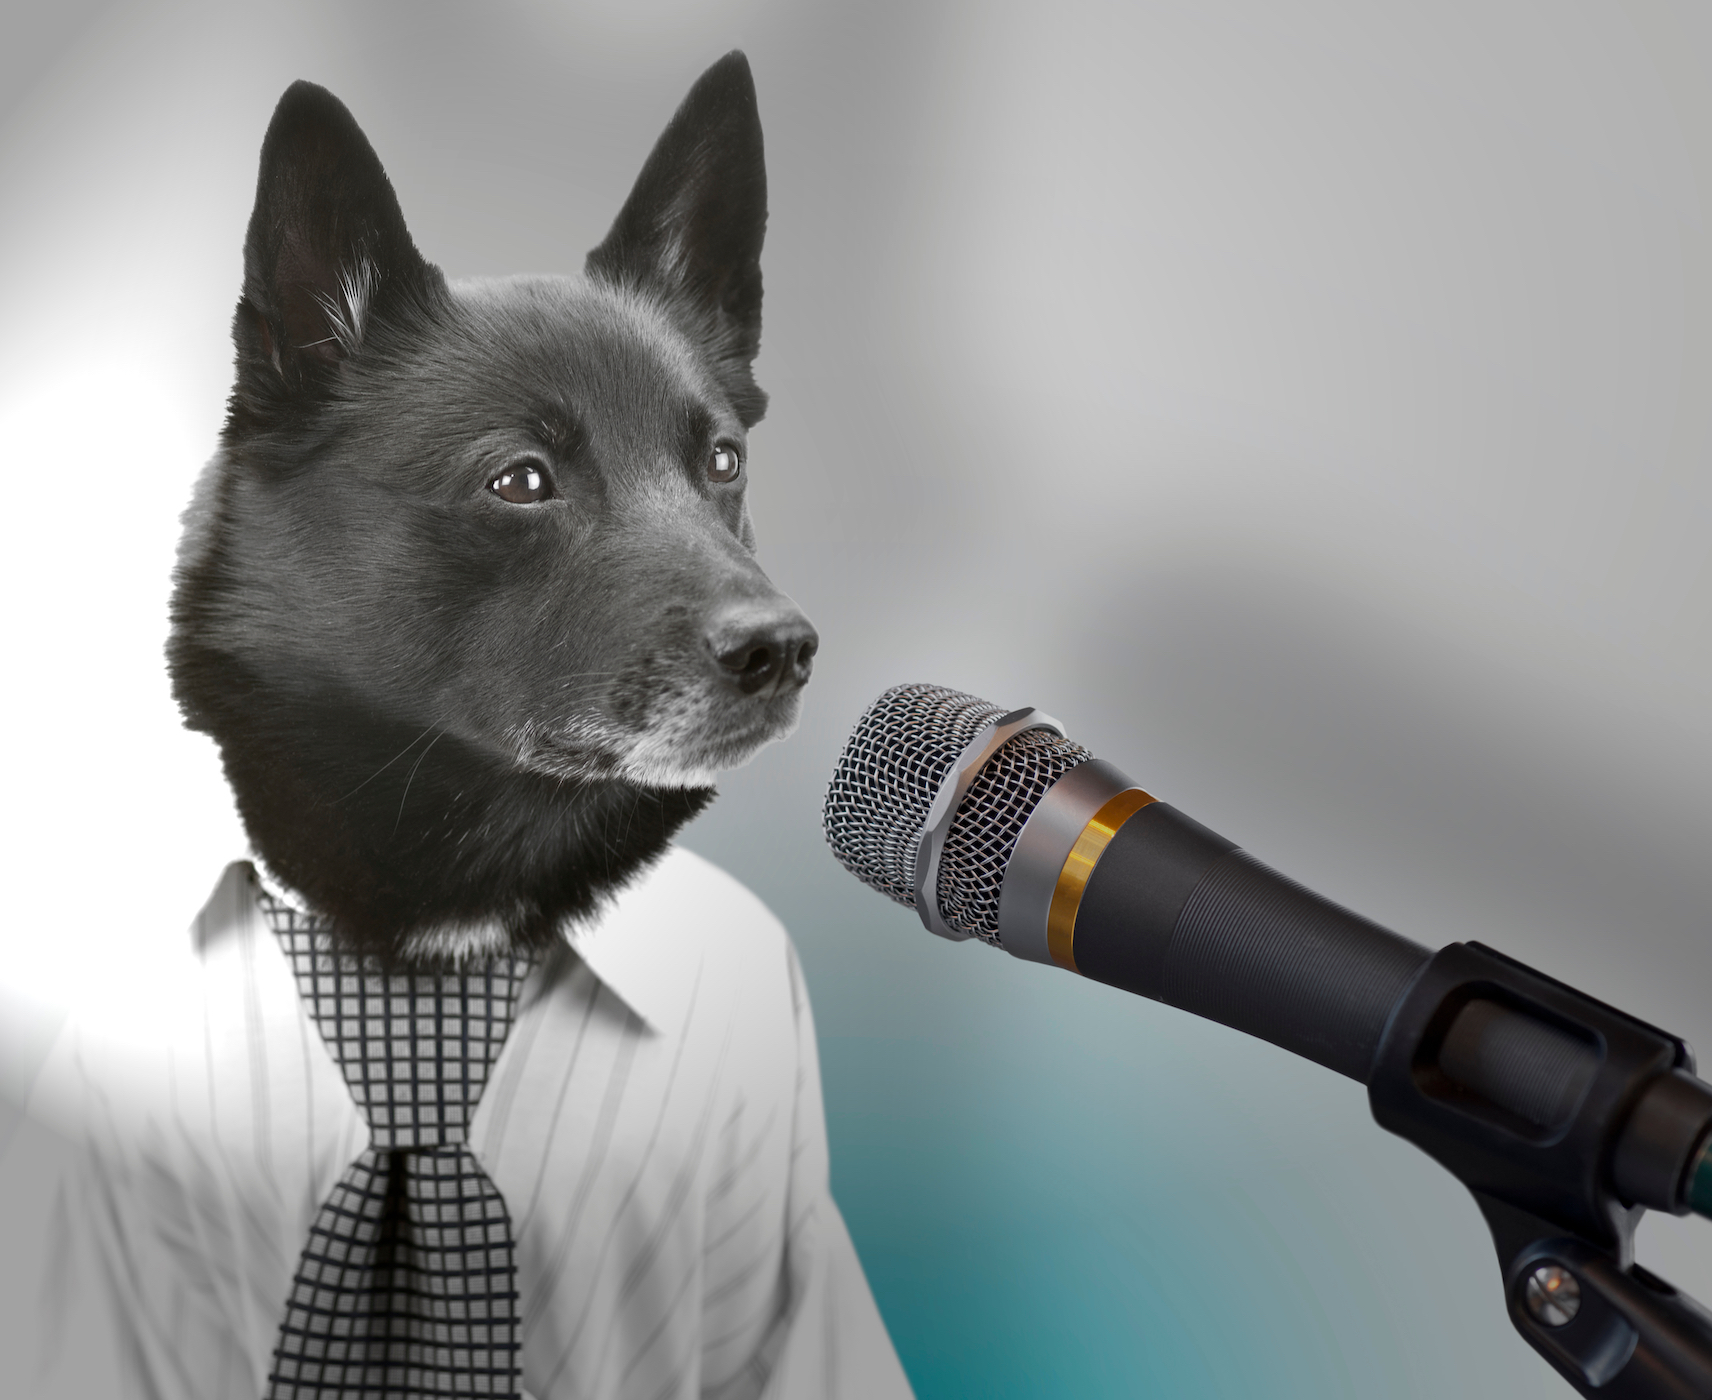 Canva - Dog as politician